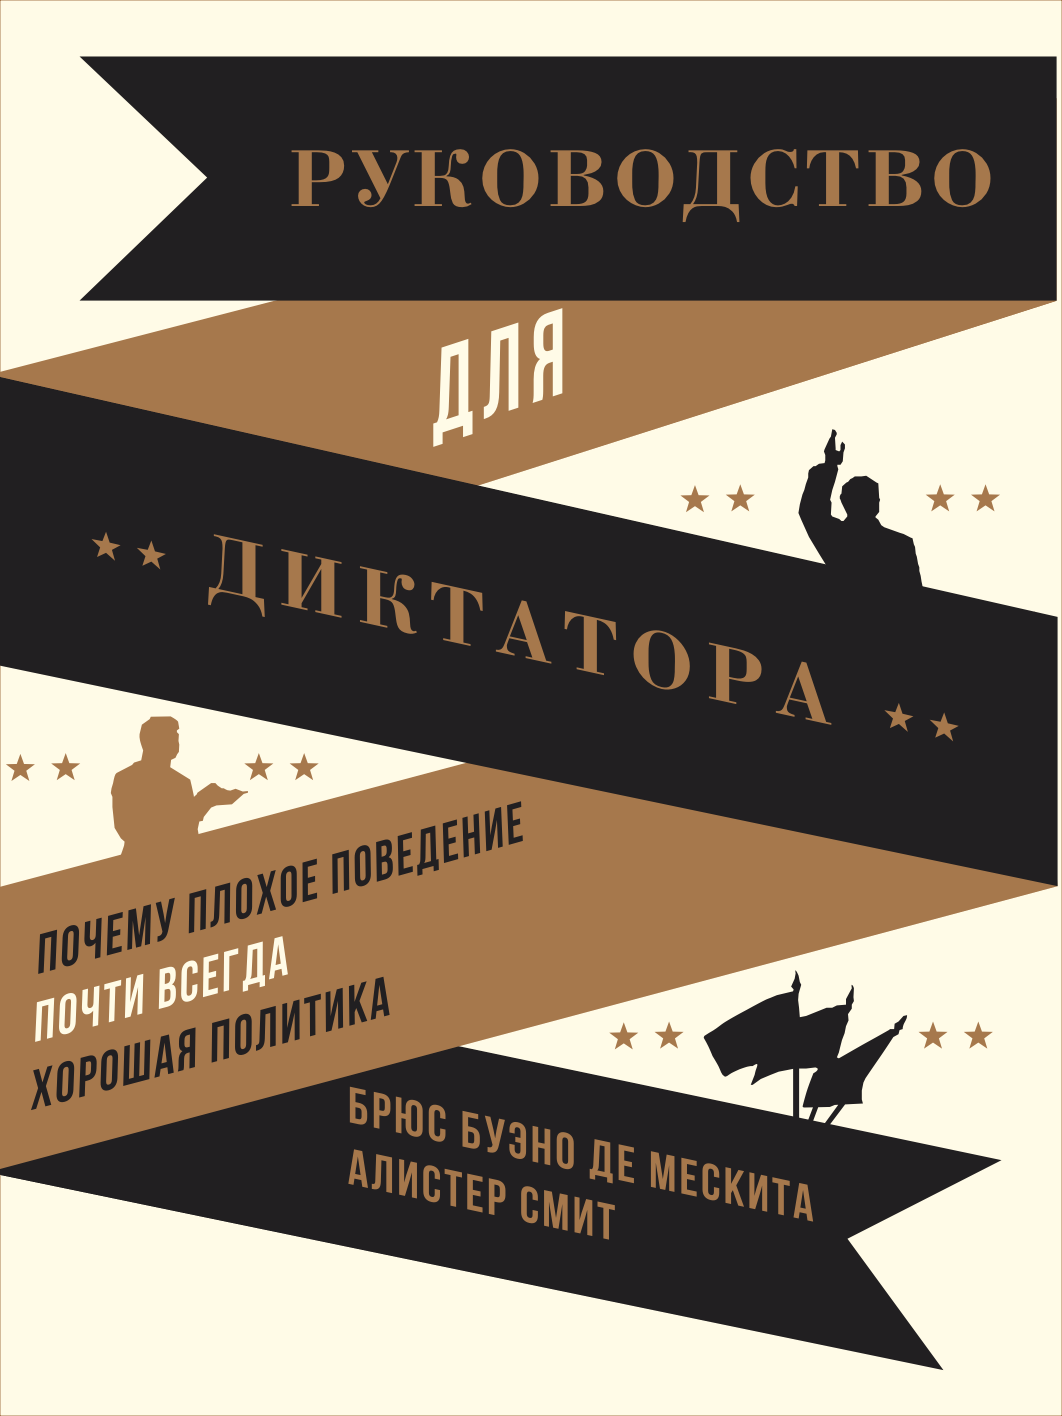 Bruce Bueno de Mesquita and Alastair Smith The Dictator's Handbook Cover — Брюс Буэно де Мескита и Алистер Смит Руководство для диктатора обложка